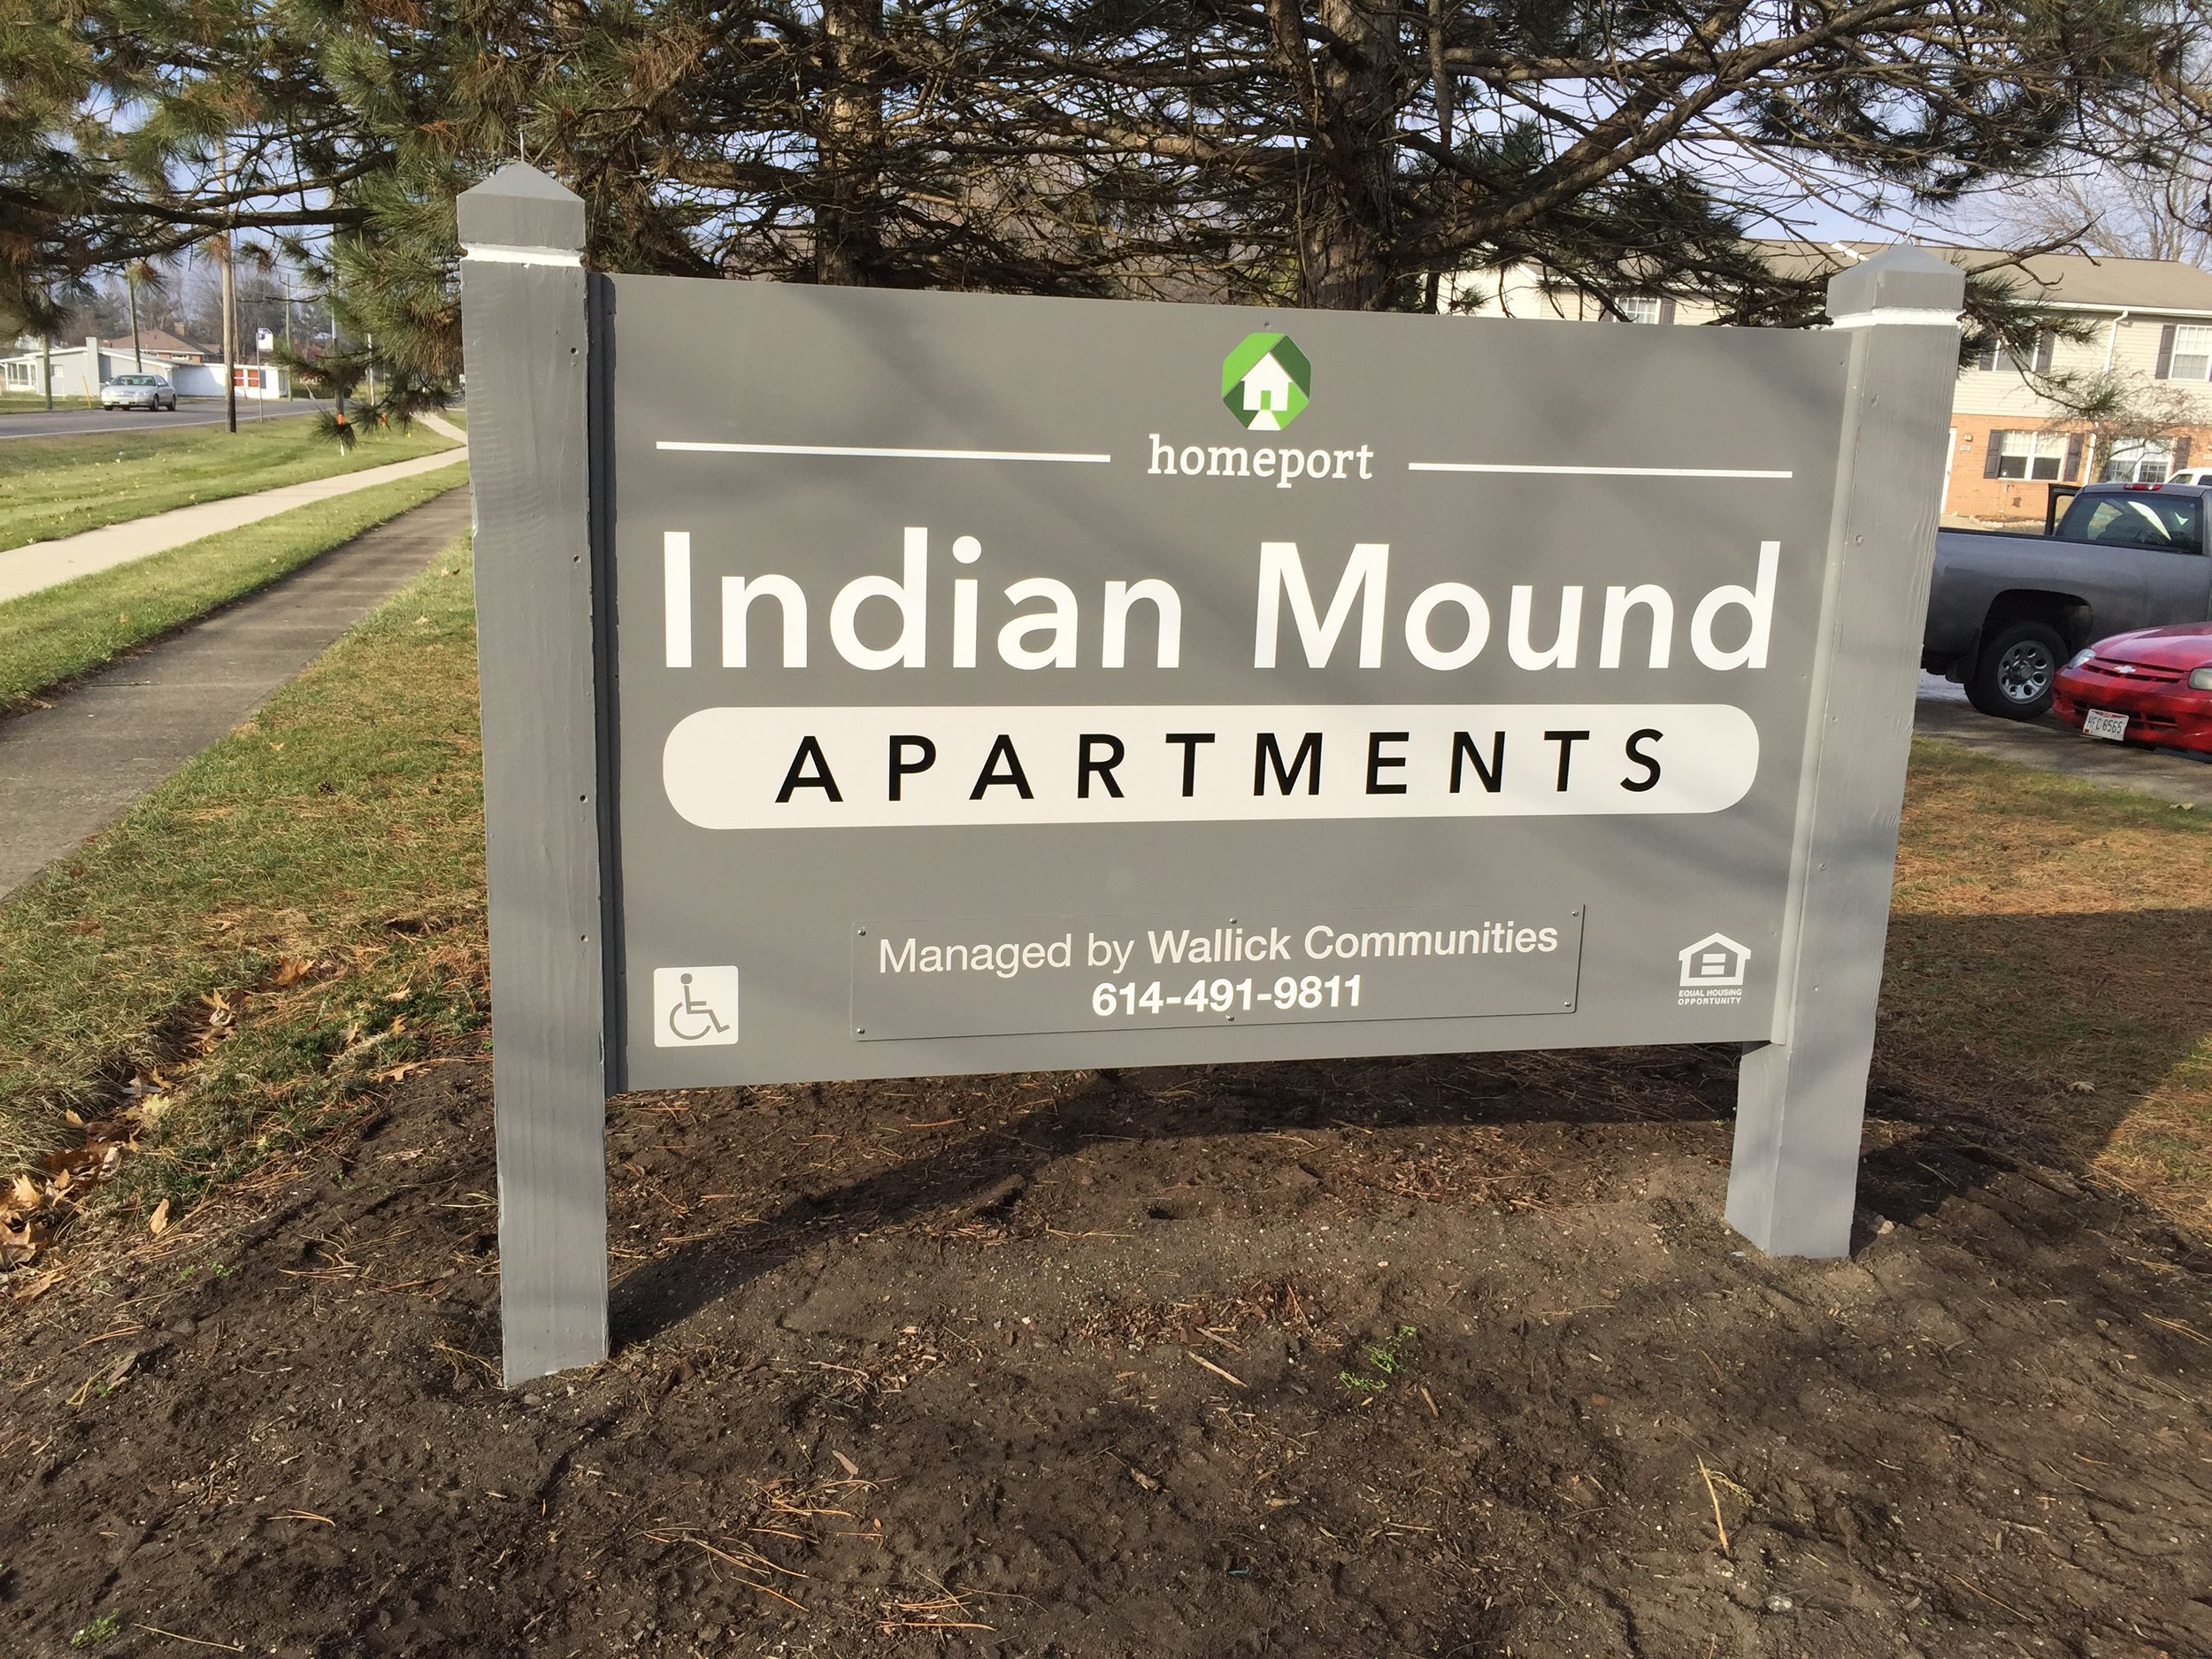 As part of Homeport's efforts to better service and connect with its residents, new signage was recently created at entry points to its residential communities including Indian Mound on the southwest side of Columbus. Also part of the signage initiative were the communities of Raspberry Glen, Marsh Run and Renaissance Village.